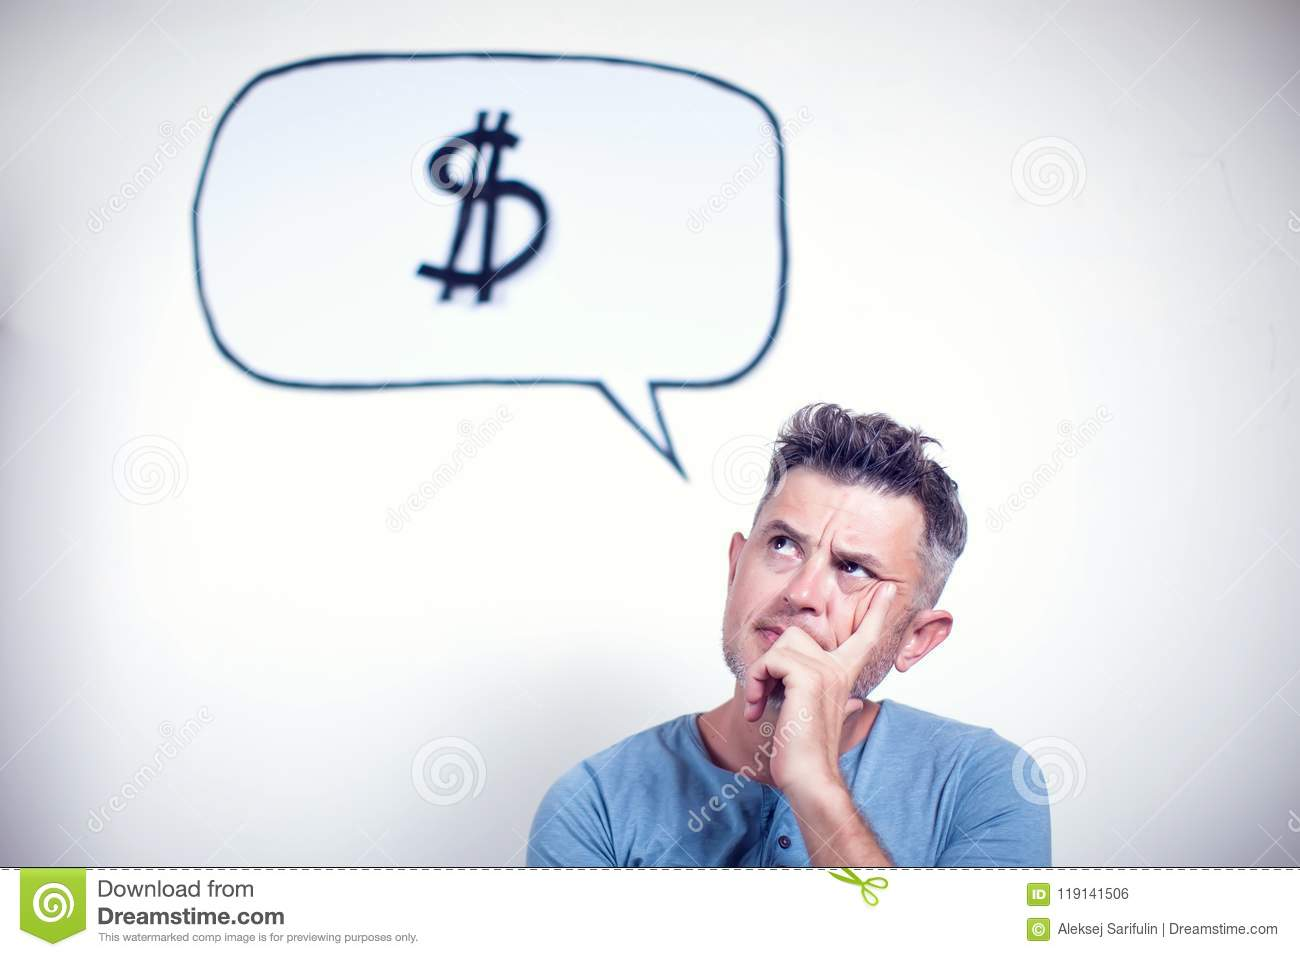 Portrait of a young man with a speech bubble dollar sign